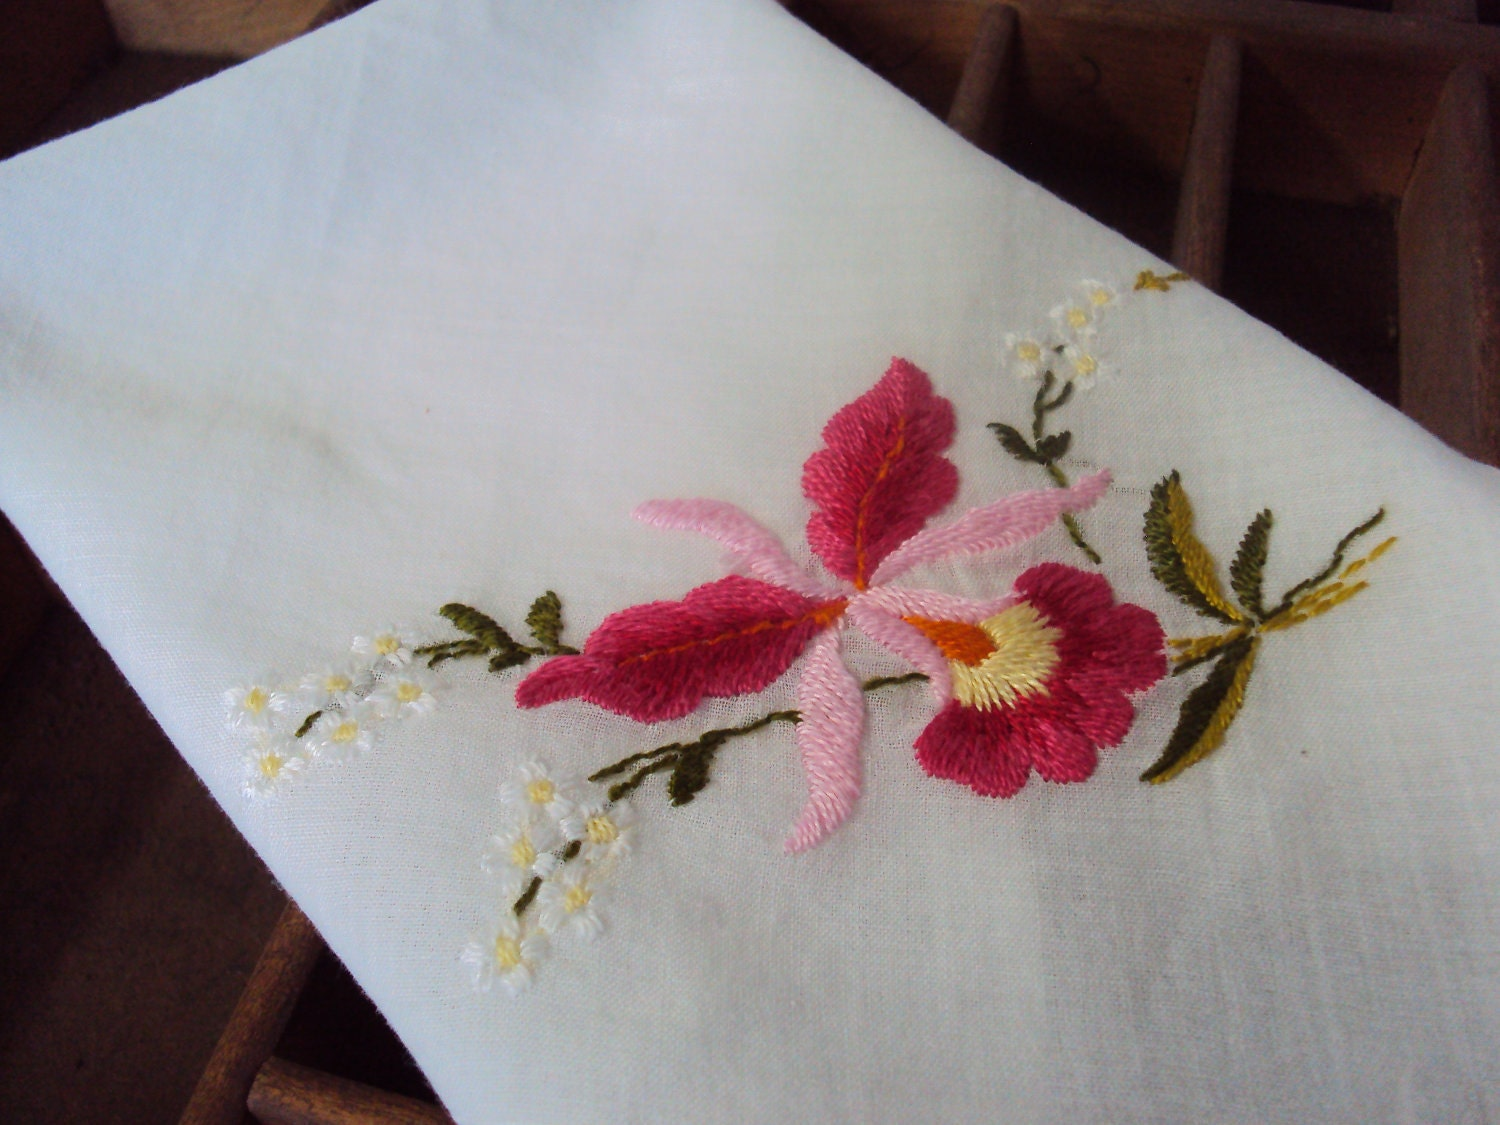 Handkerchief Embroidery Designs - Free Embroidery Patterns